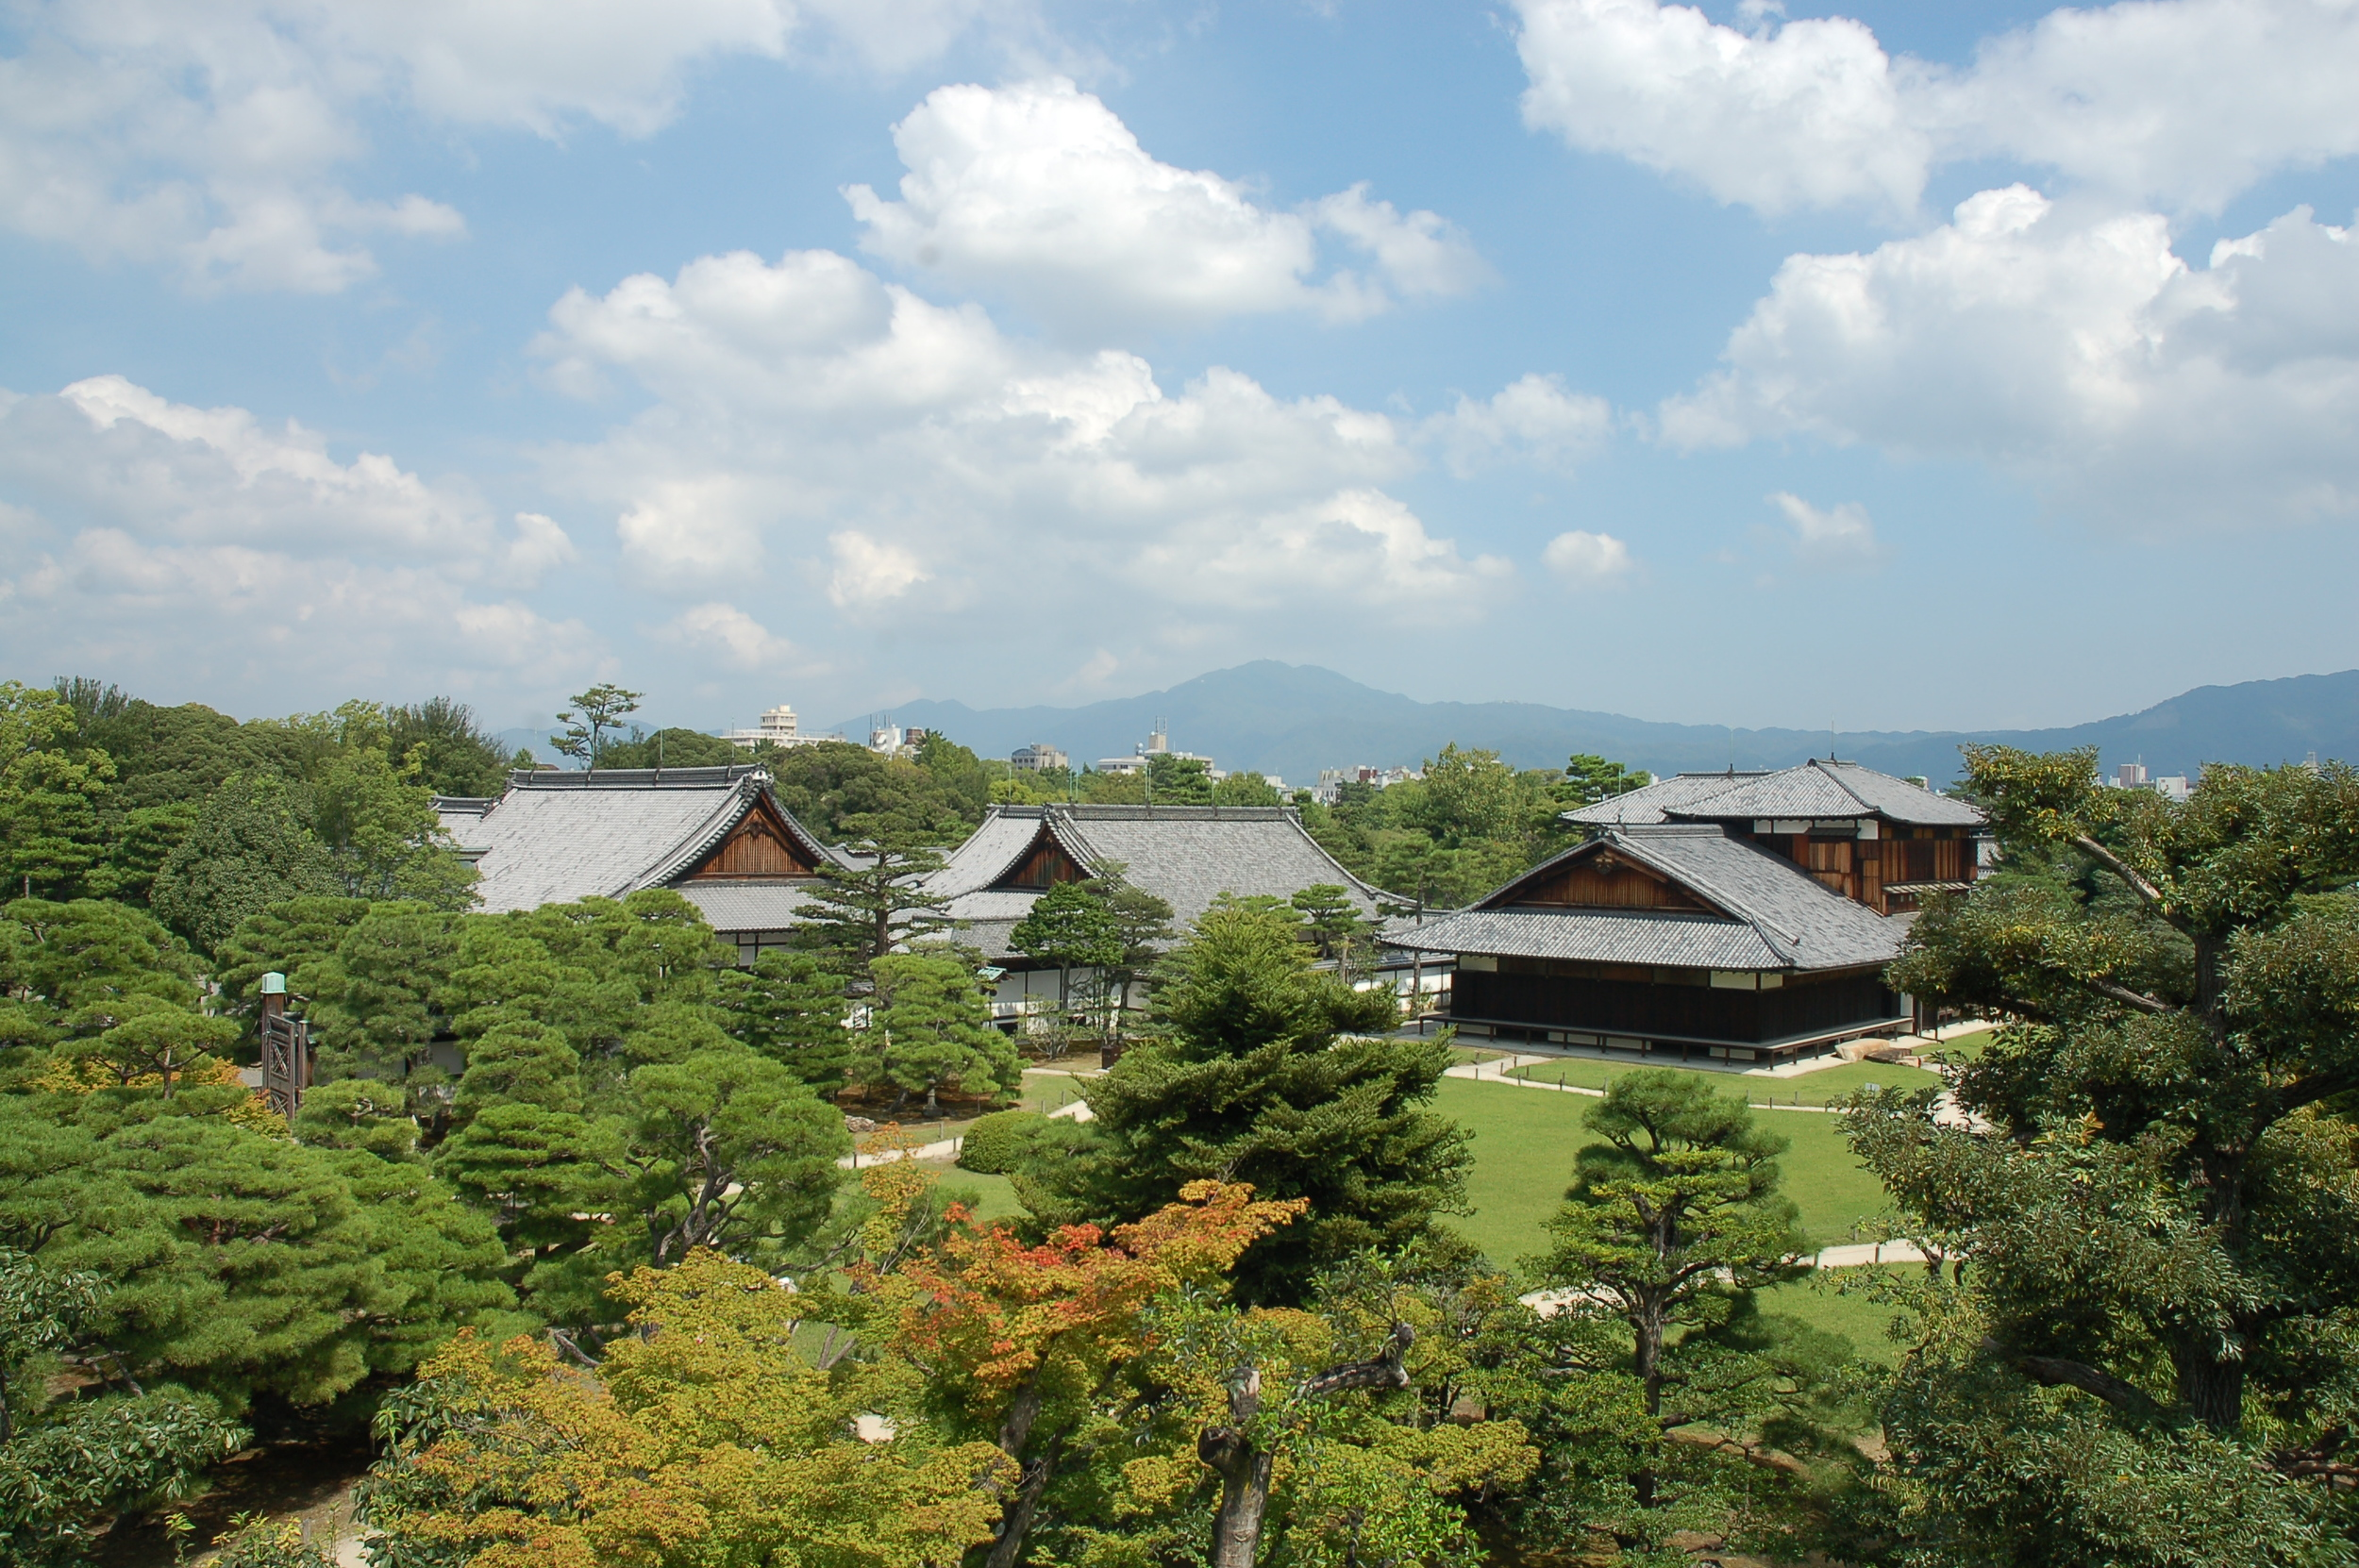 Overlooking the Nijo Castle complex